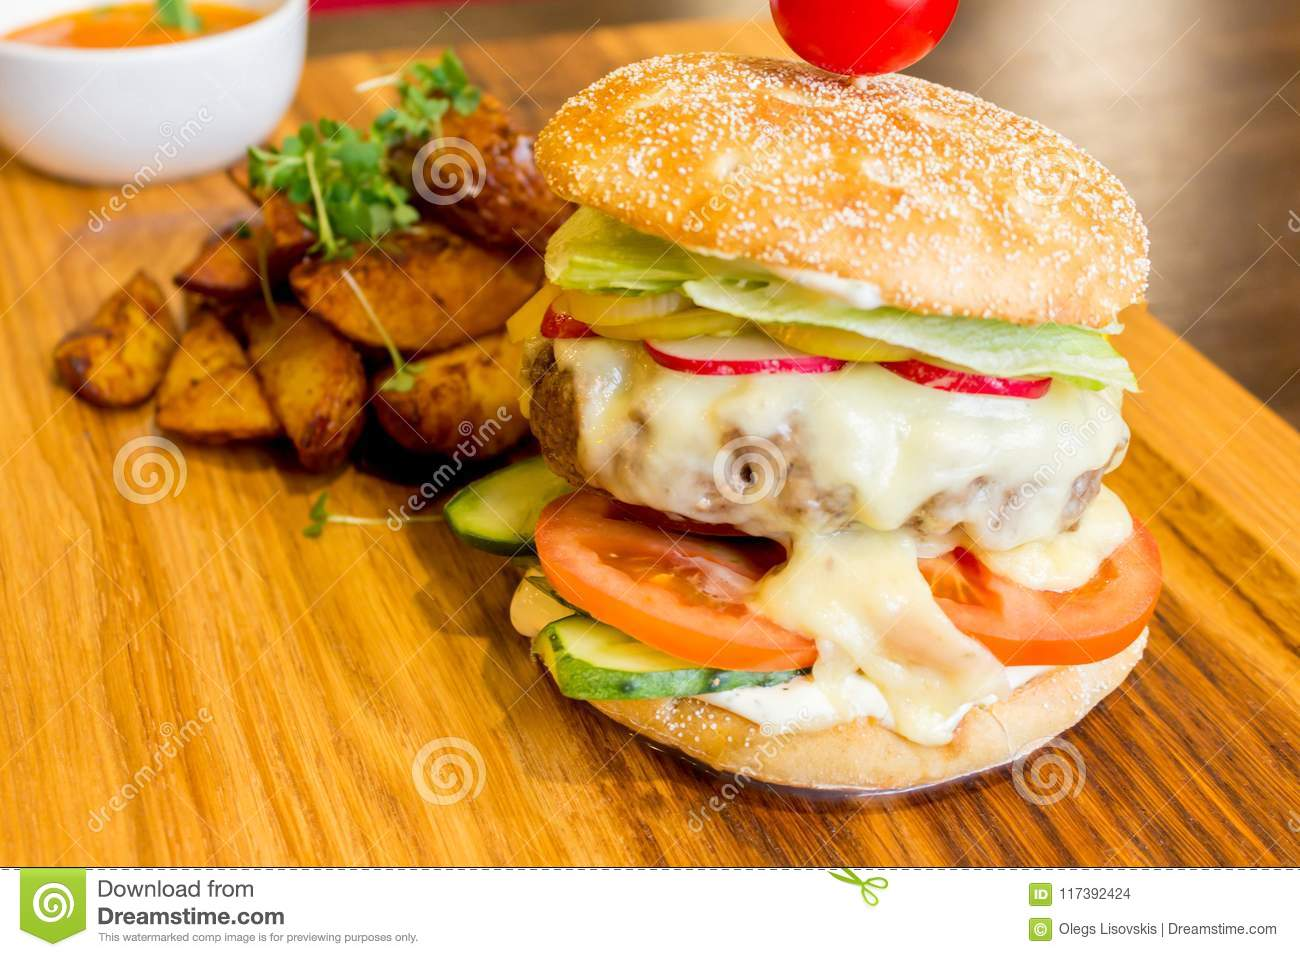 Tasty Burger On A Wooden Platter Stock Photo Image Of Cucumber Black 117392424